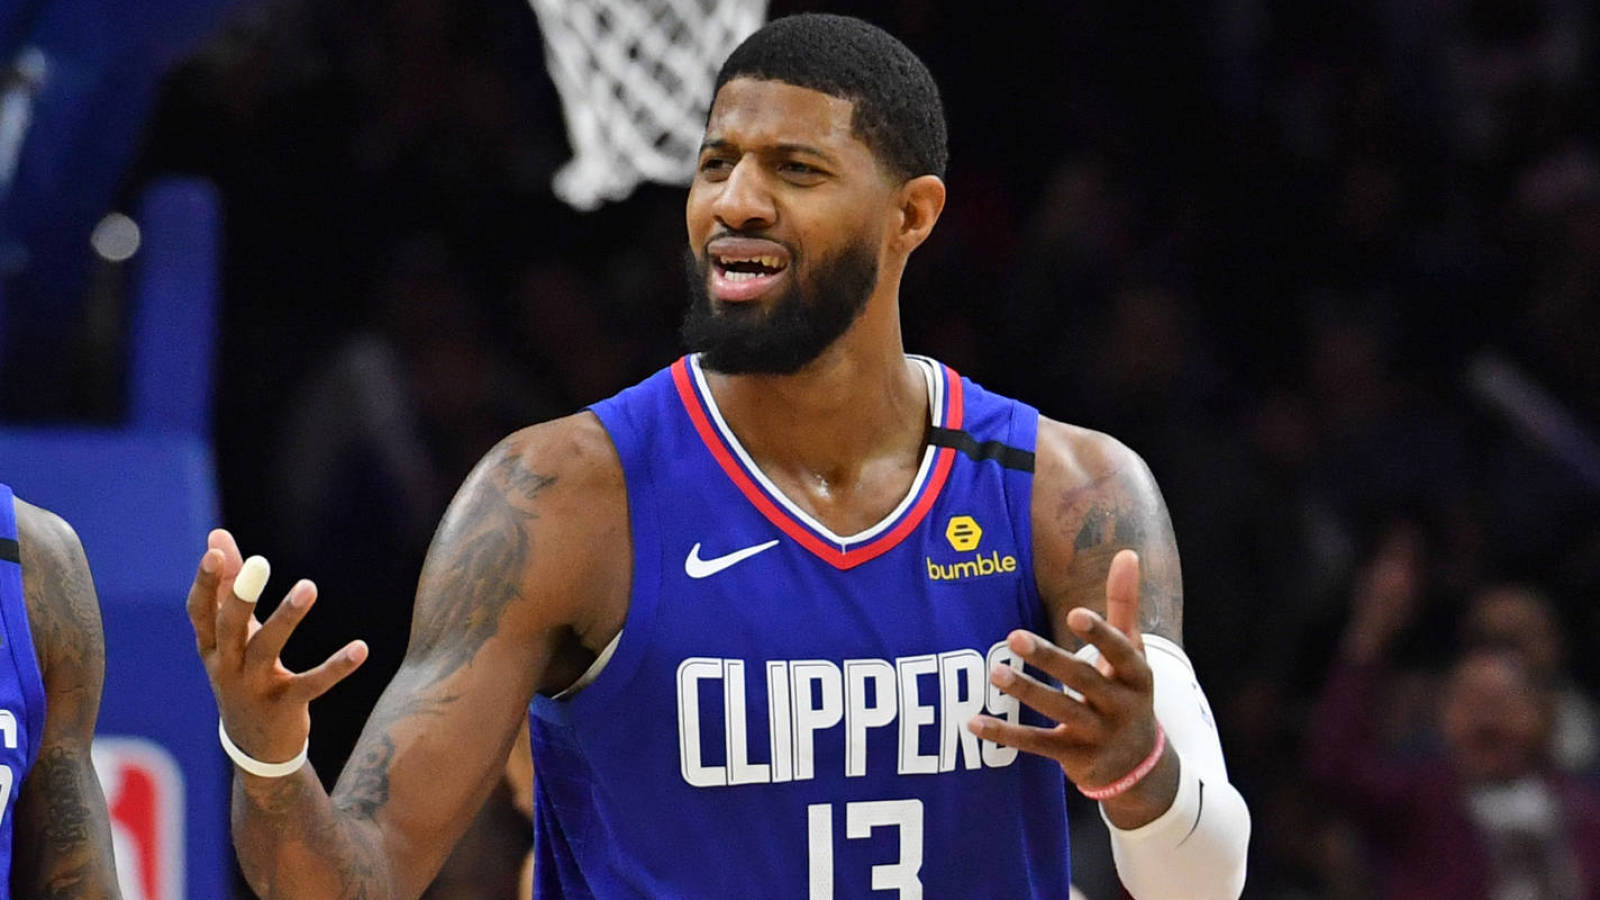 NBA fines Clippers' Paul George $35,000 for criticizing officials